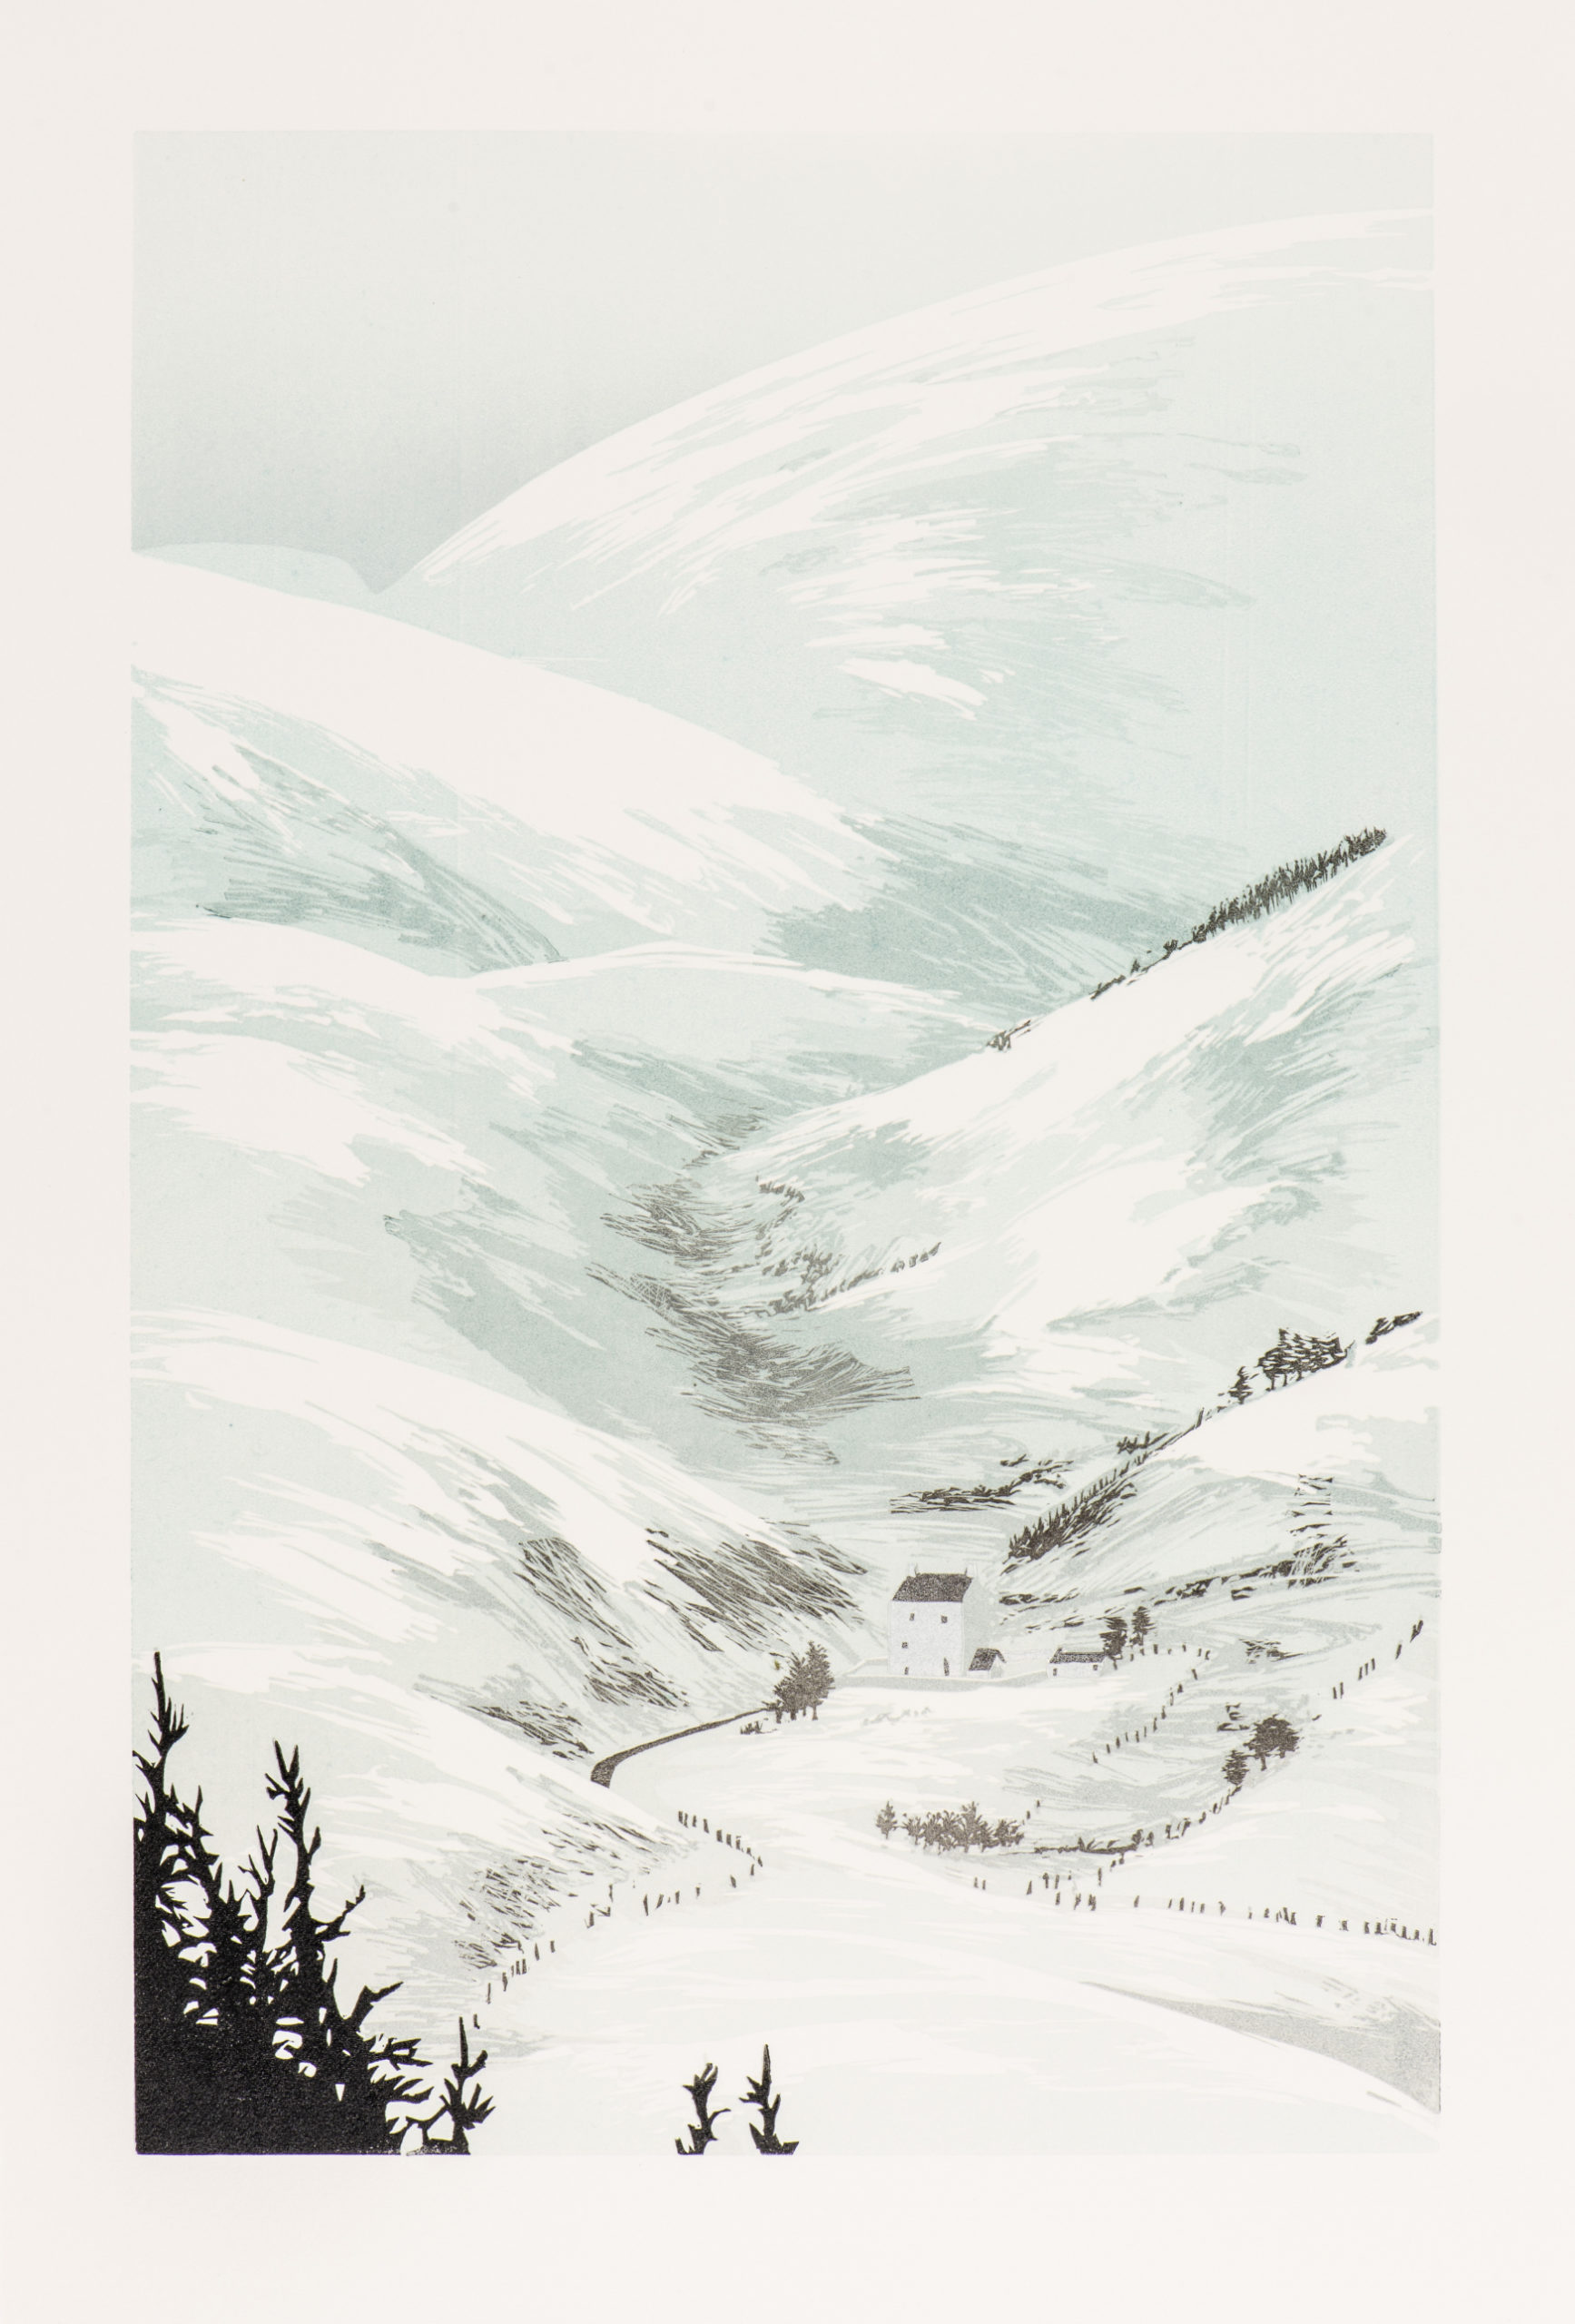 Laura Boswell. Winter at Corgaff (Linocut - 290 x450 mm)